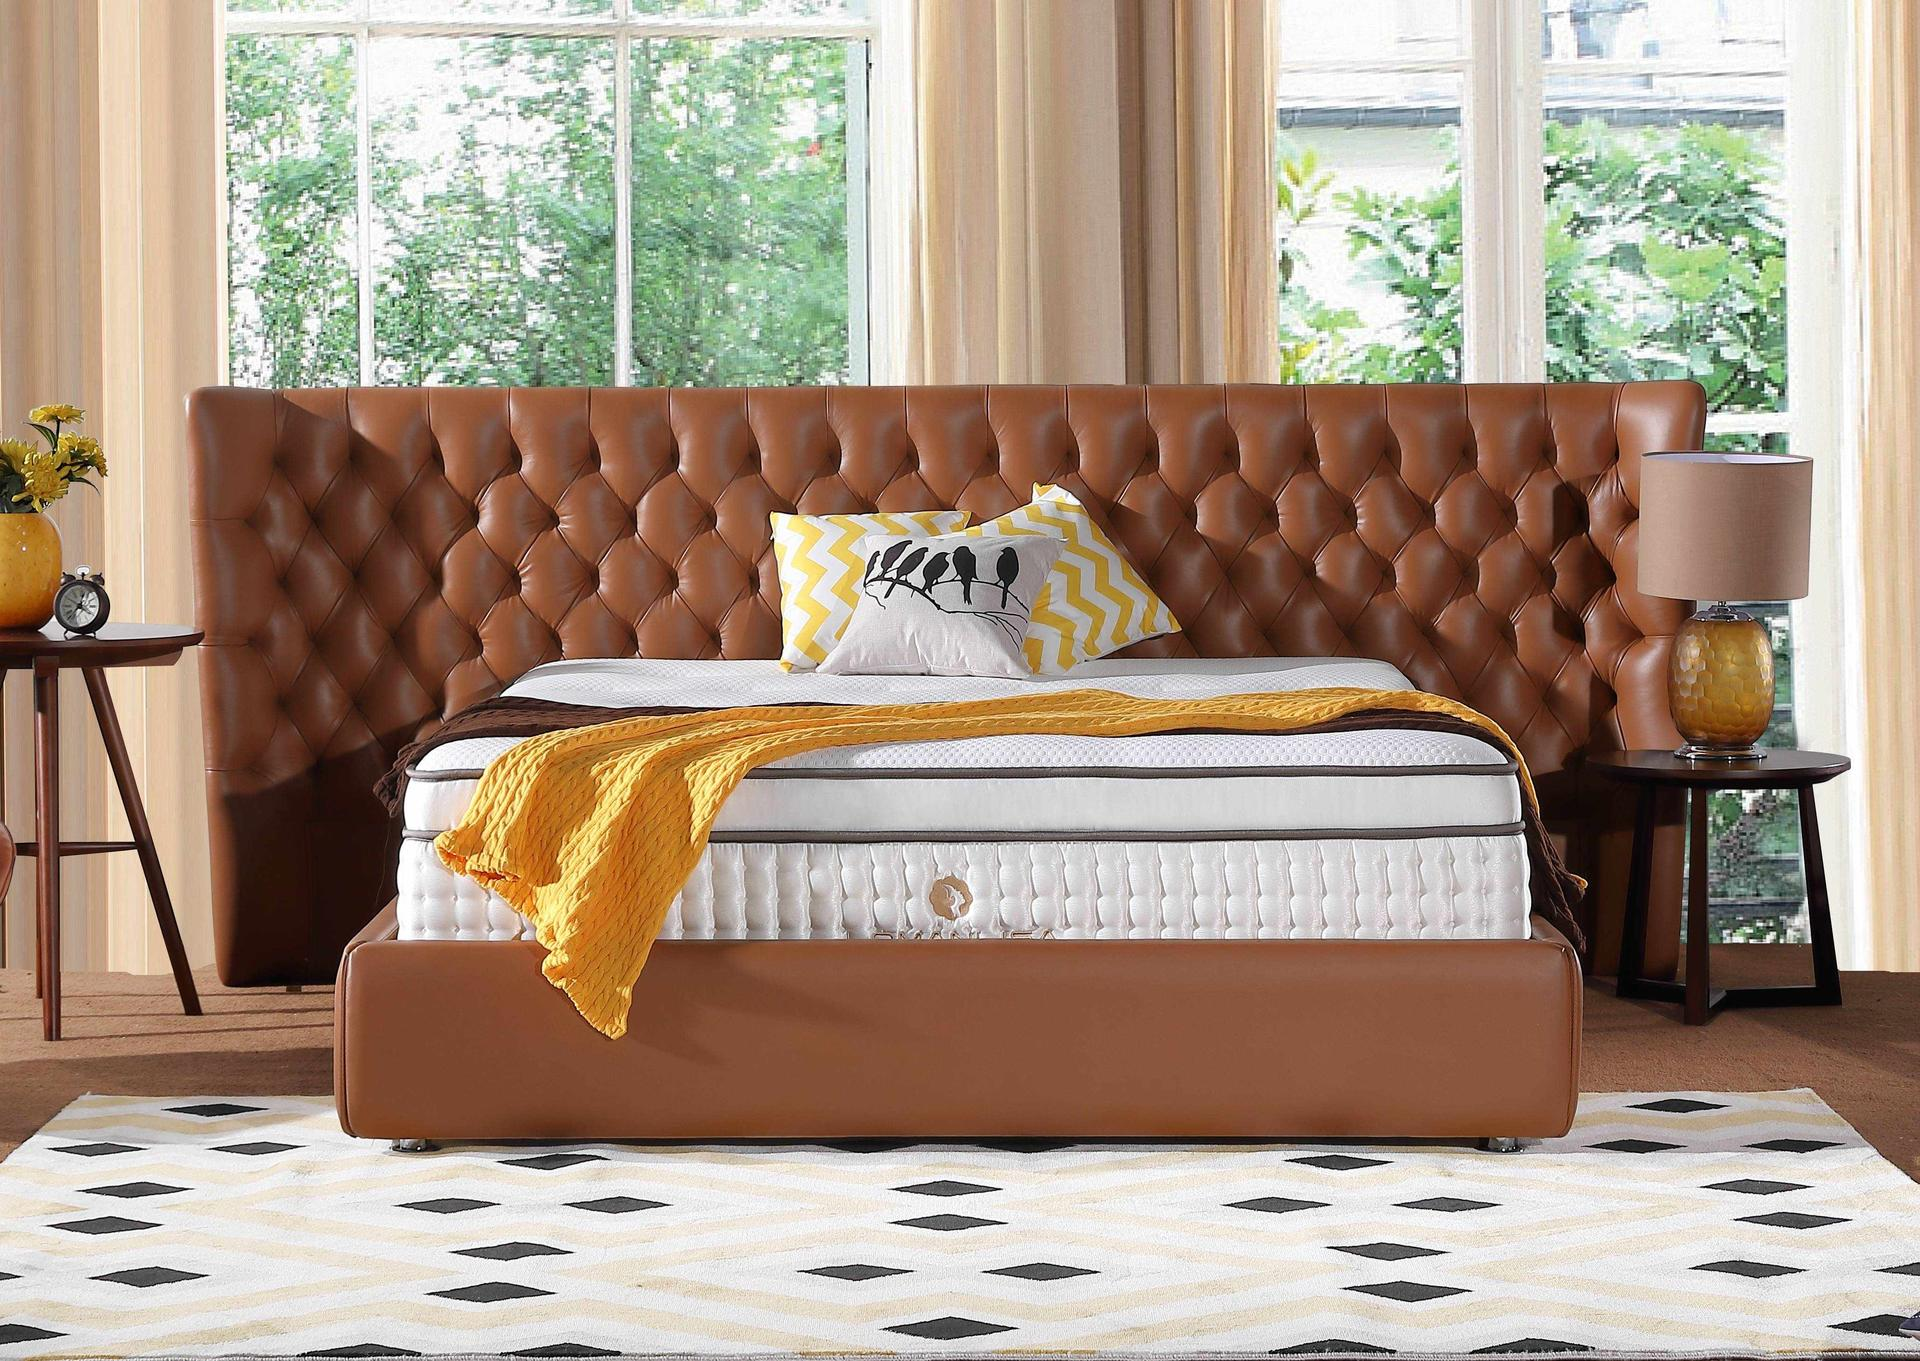 34PD-03 | 2018 Hand Tufted Double Spring Latex Mattress with High Quality Ice Silk Fabric